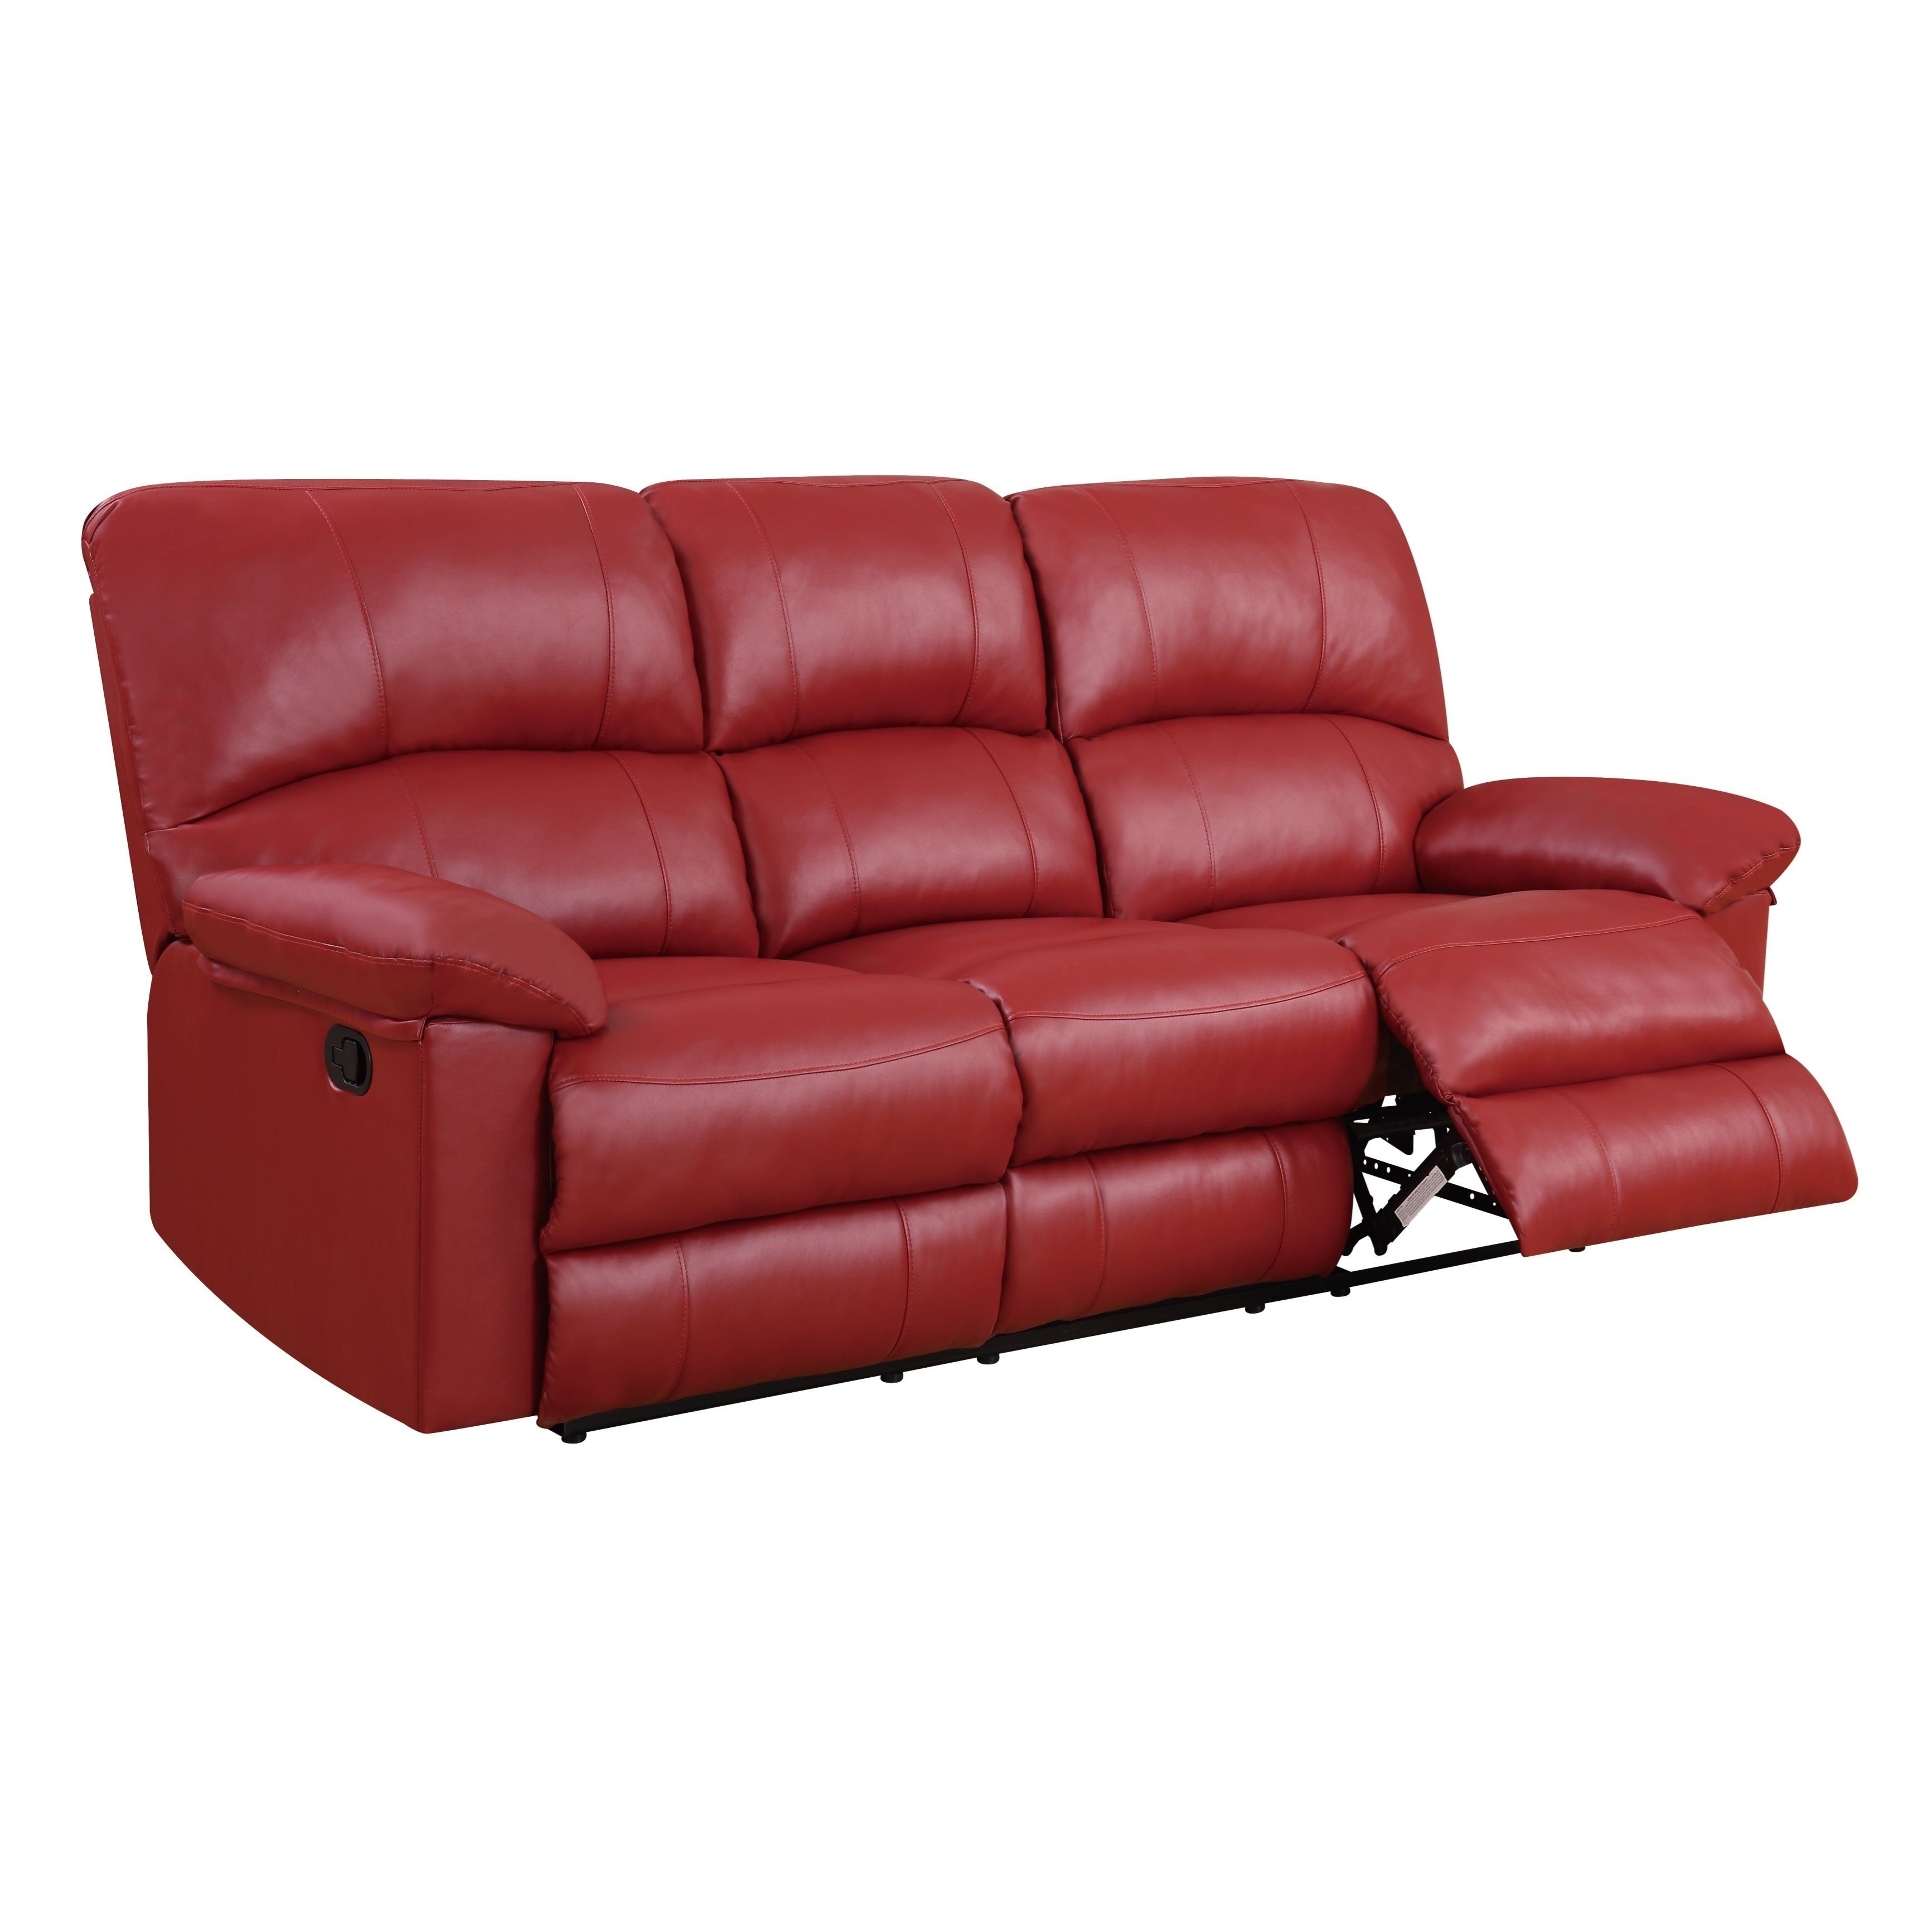 Astonishing This Plush And Eye Catching Recliner Sofa Allows You To Sink Ncnpc Chair Design For Home Ncnpcorg